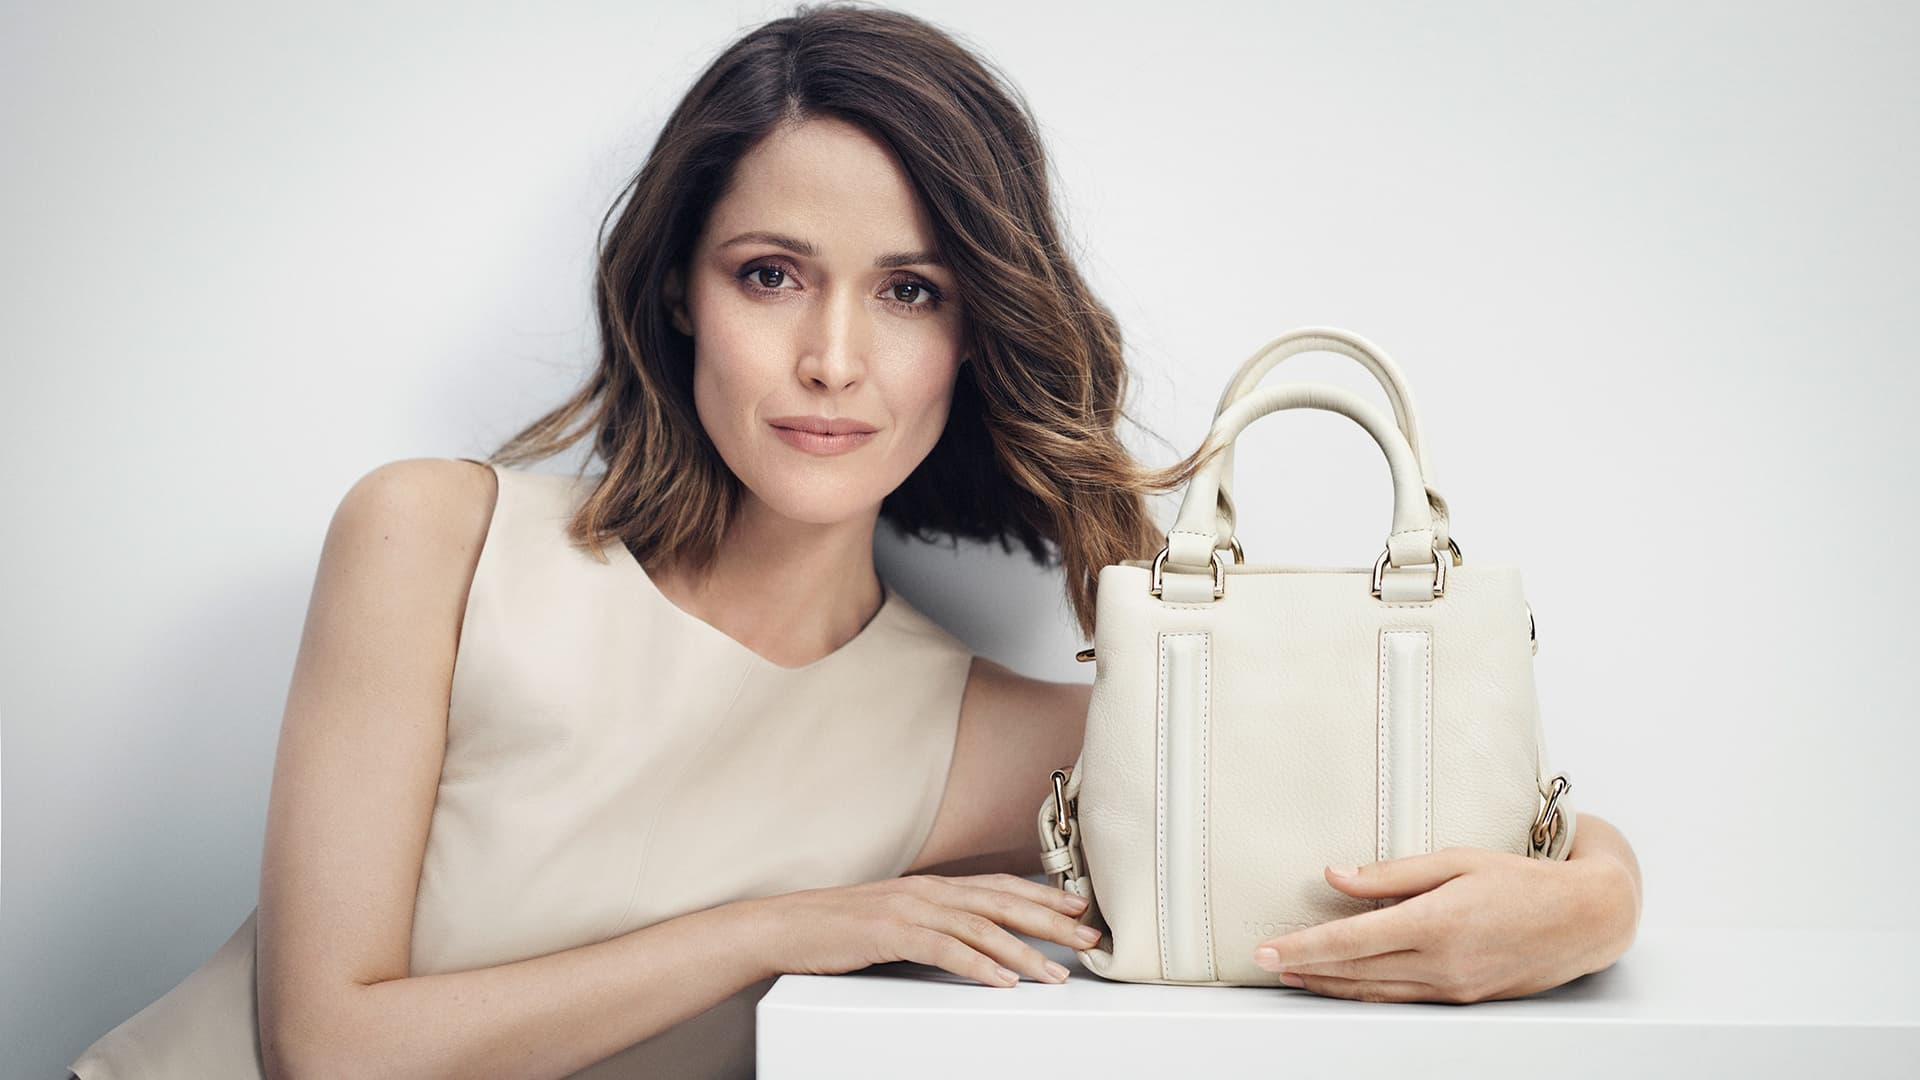 1920x1080 - Rose Byrne Wallpapers 10